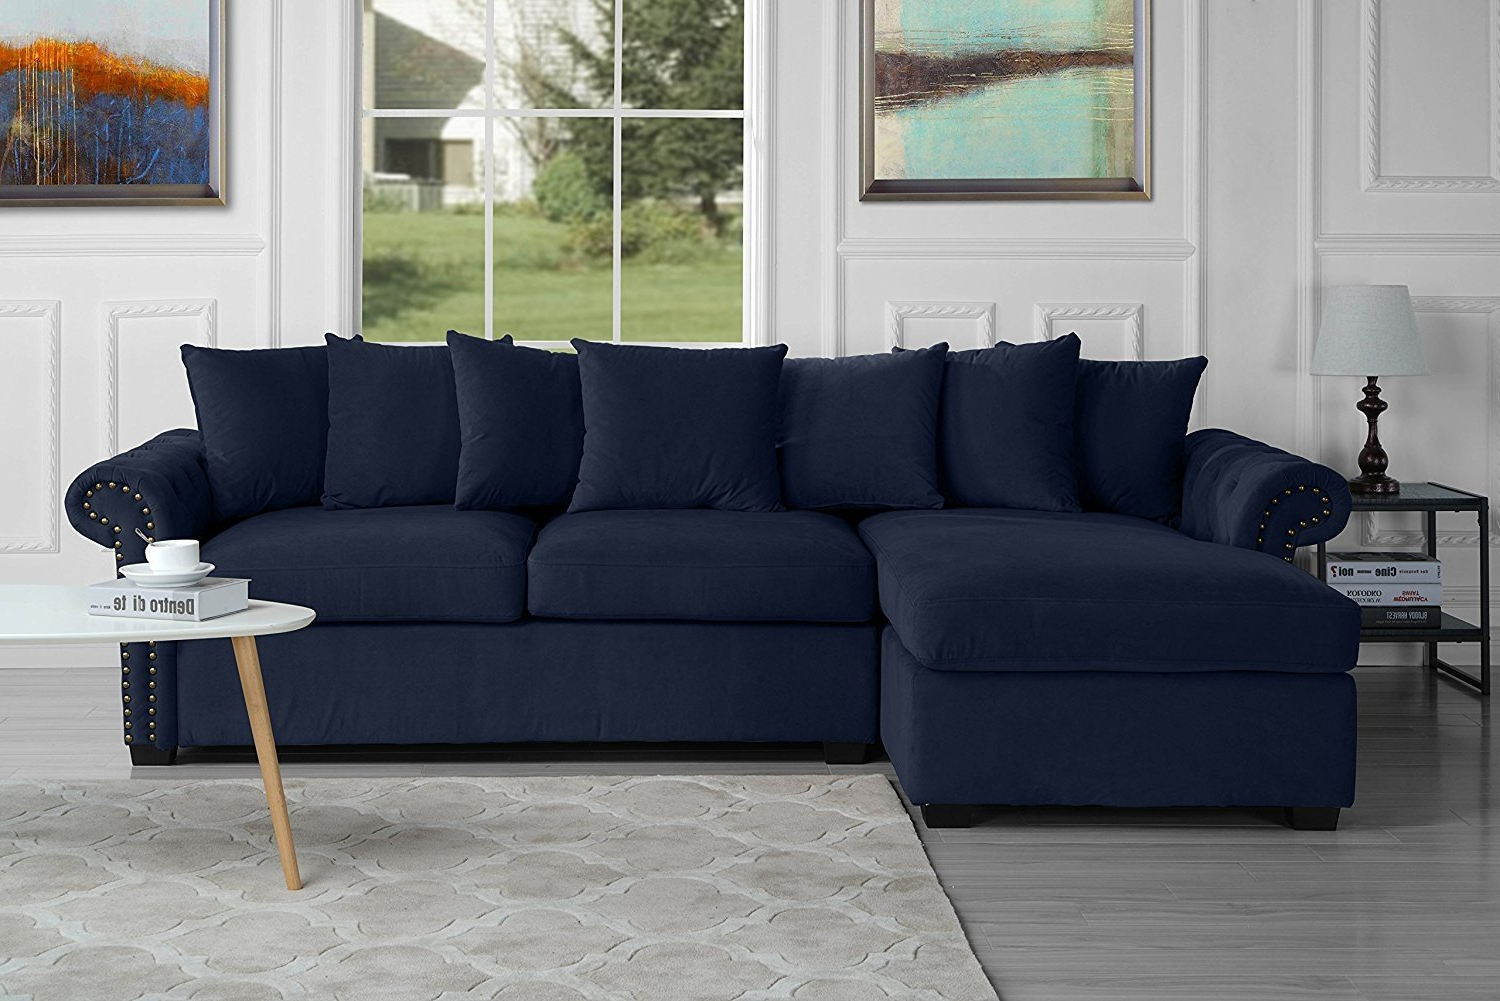 Modern Large Tufted Velvet Sectional Sofa, Scroll Arm L Throughout Most Recent Dream Navy 2 Piece Modular Sofas (View 9 of 20)